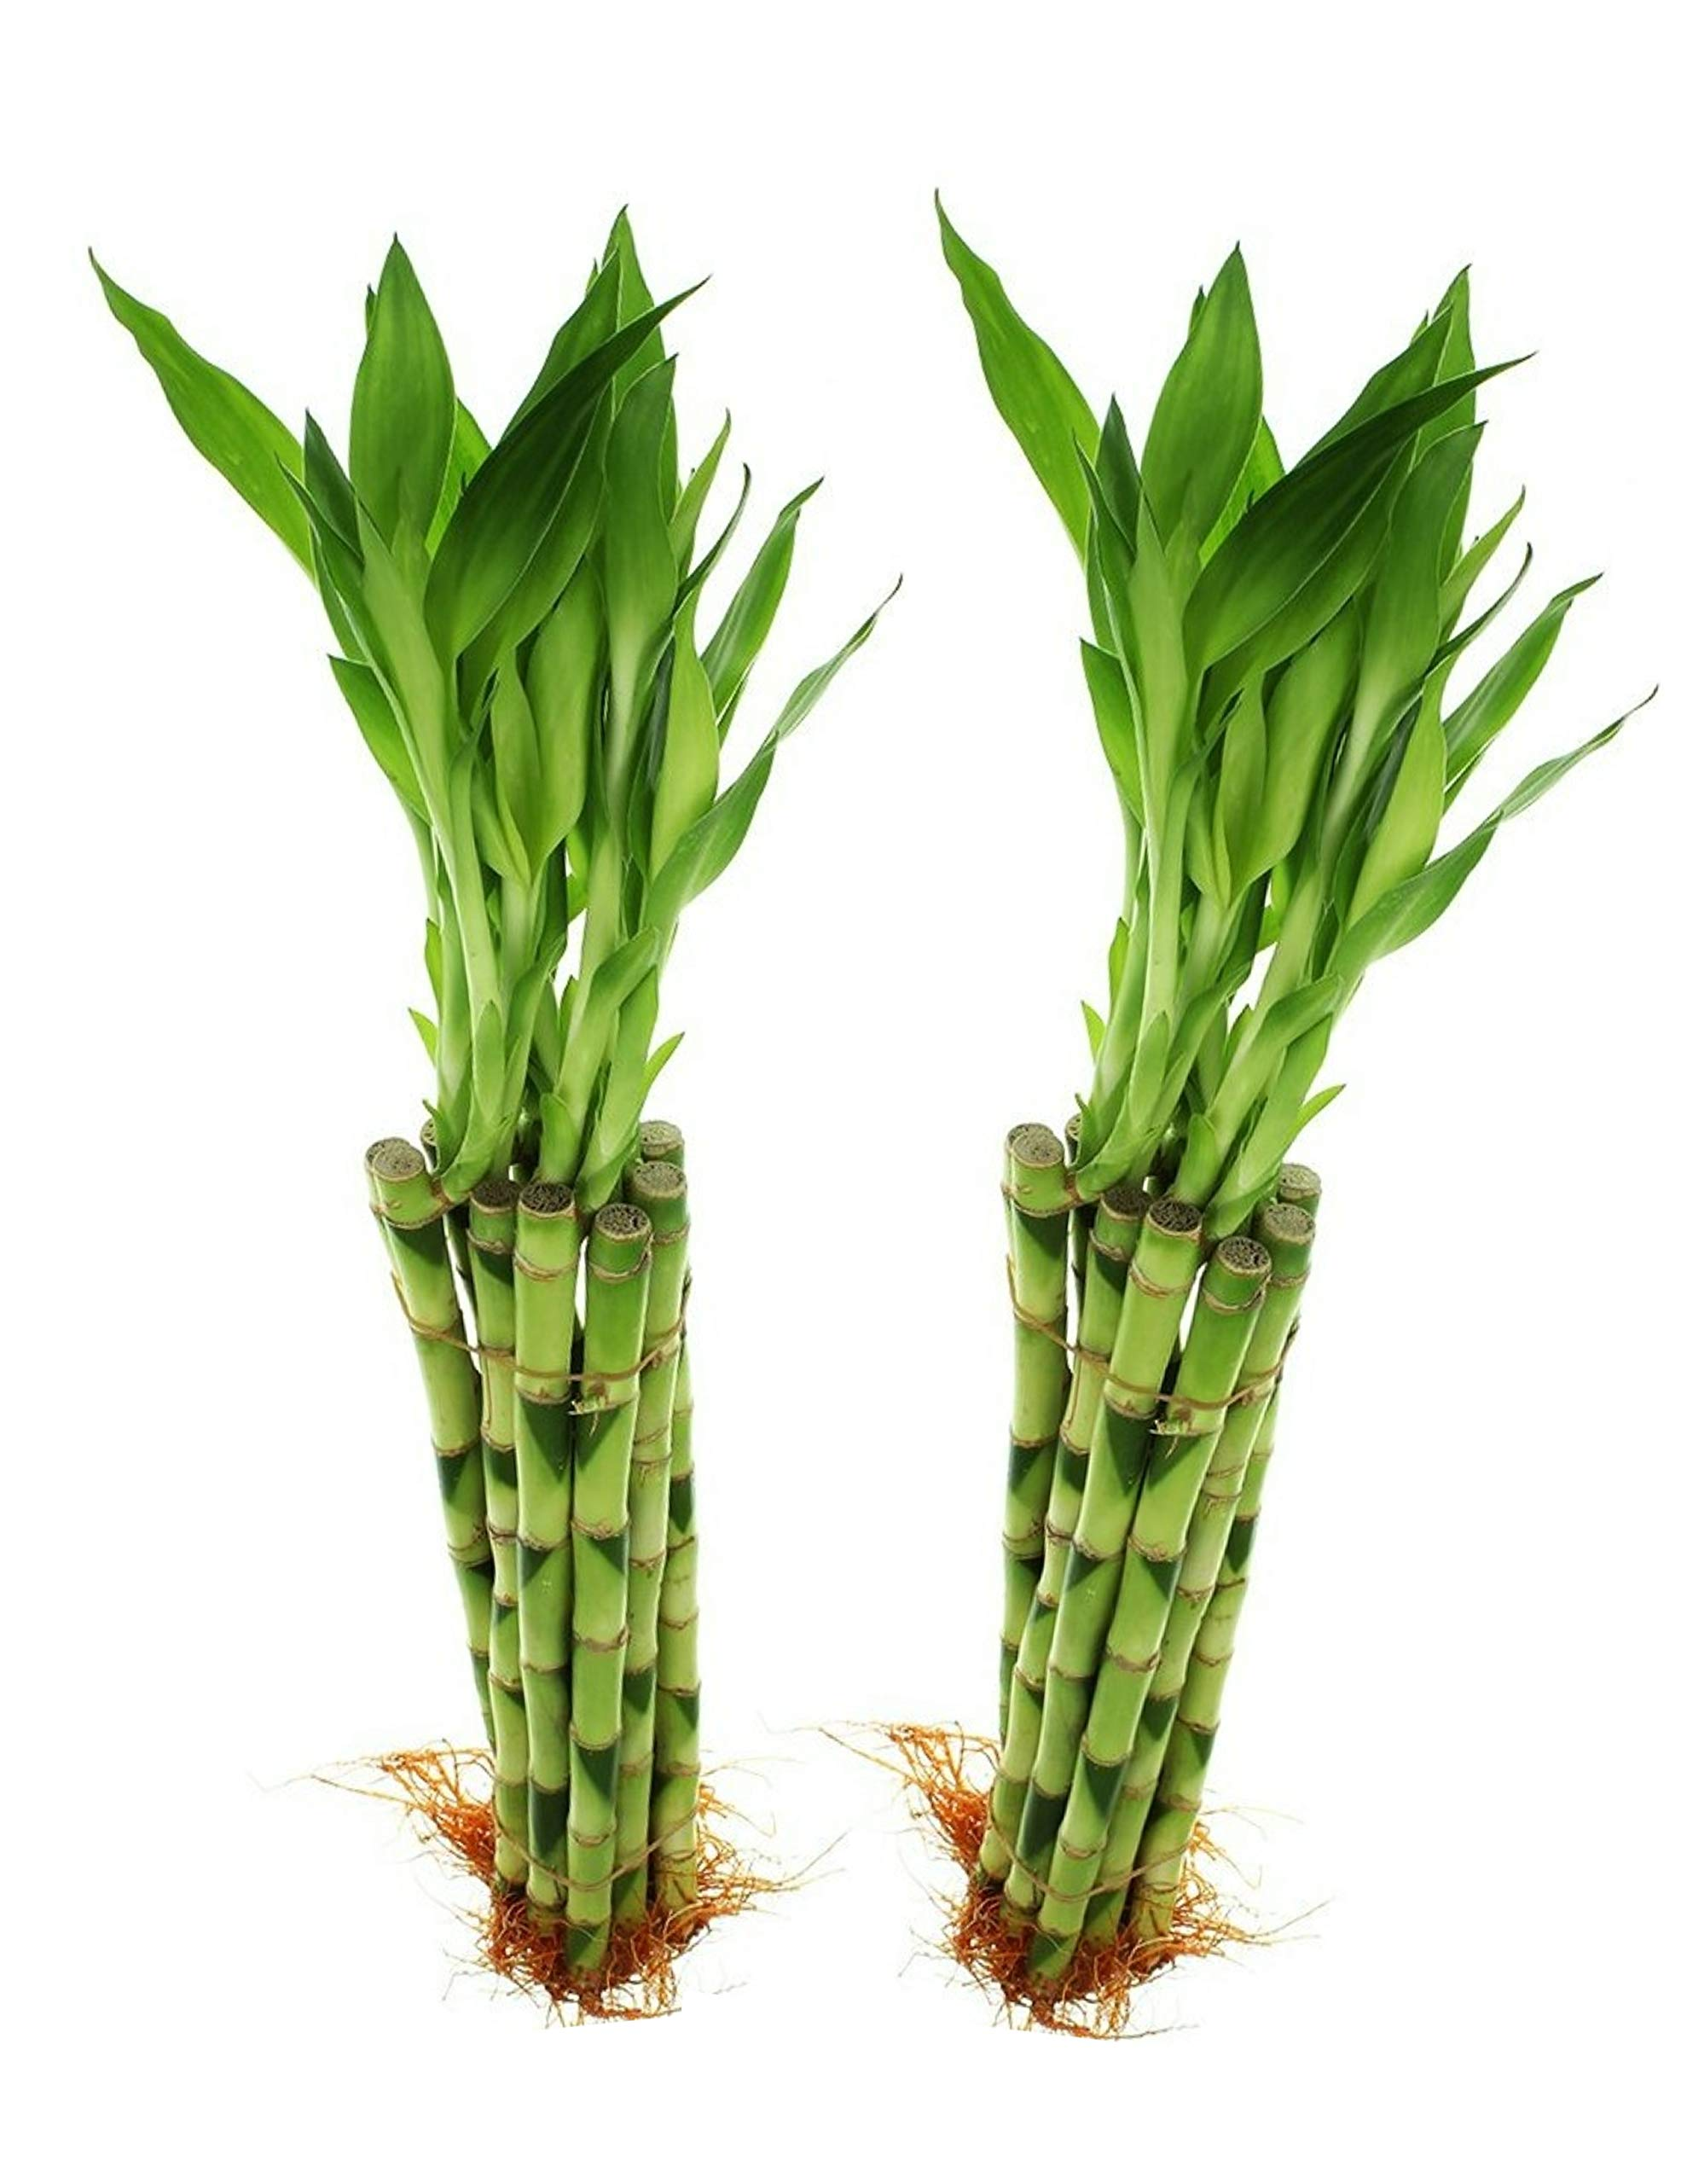 Uni Collections 10 Stalks - 12 Inch Straight Lucky Bamboo (2 Pack) by Uni Collections